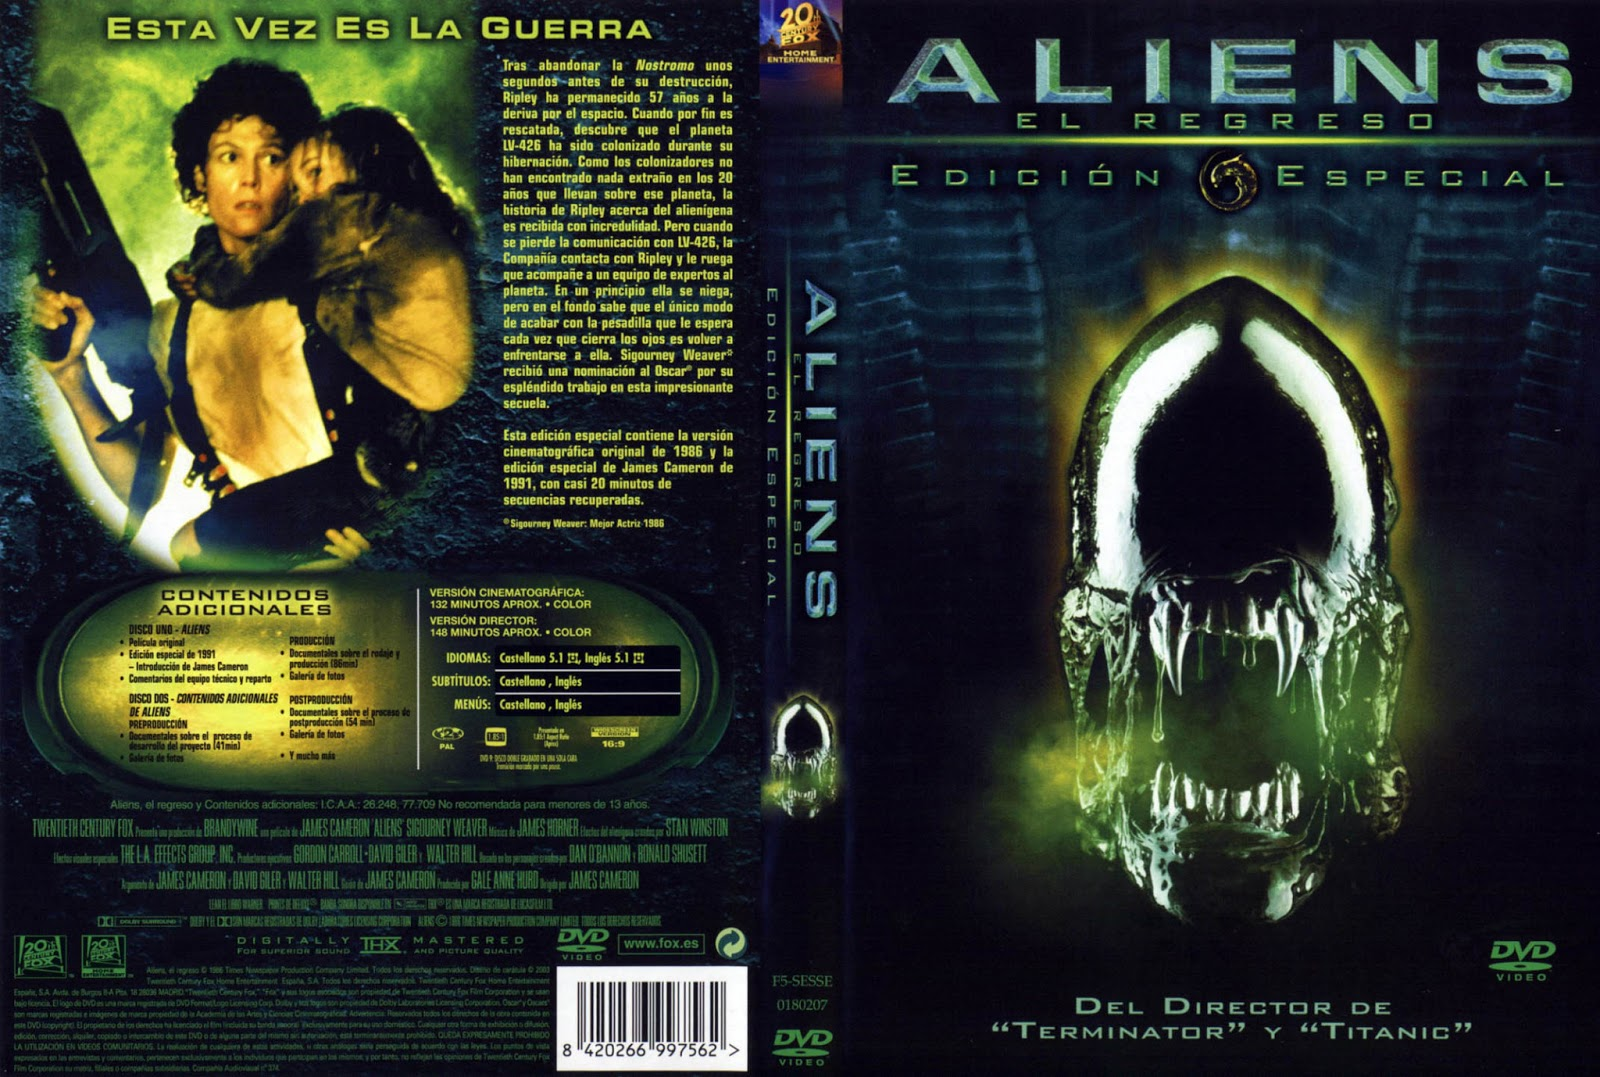 Aliens El Regreso (Version Extendida) DVD